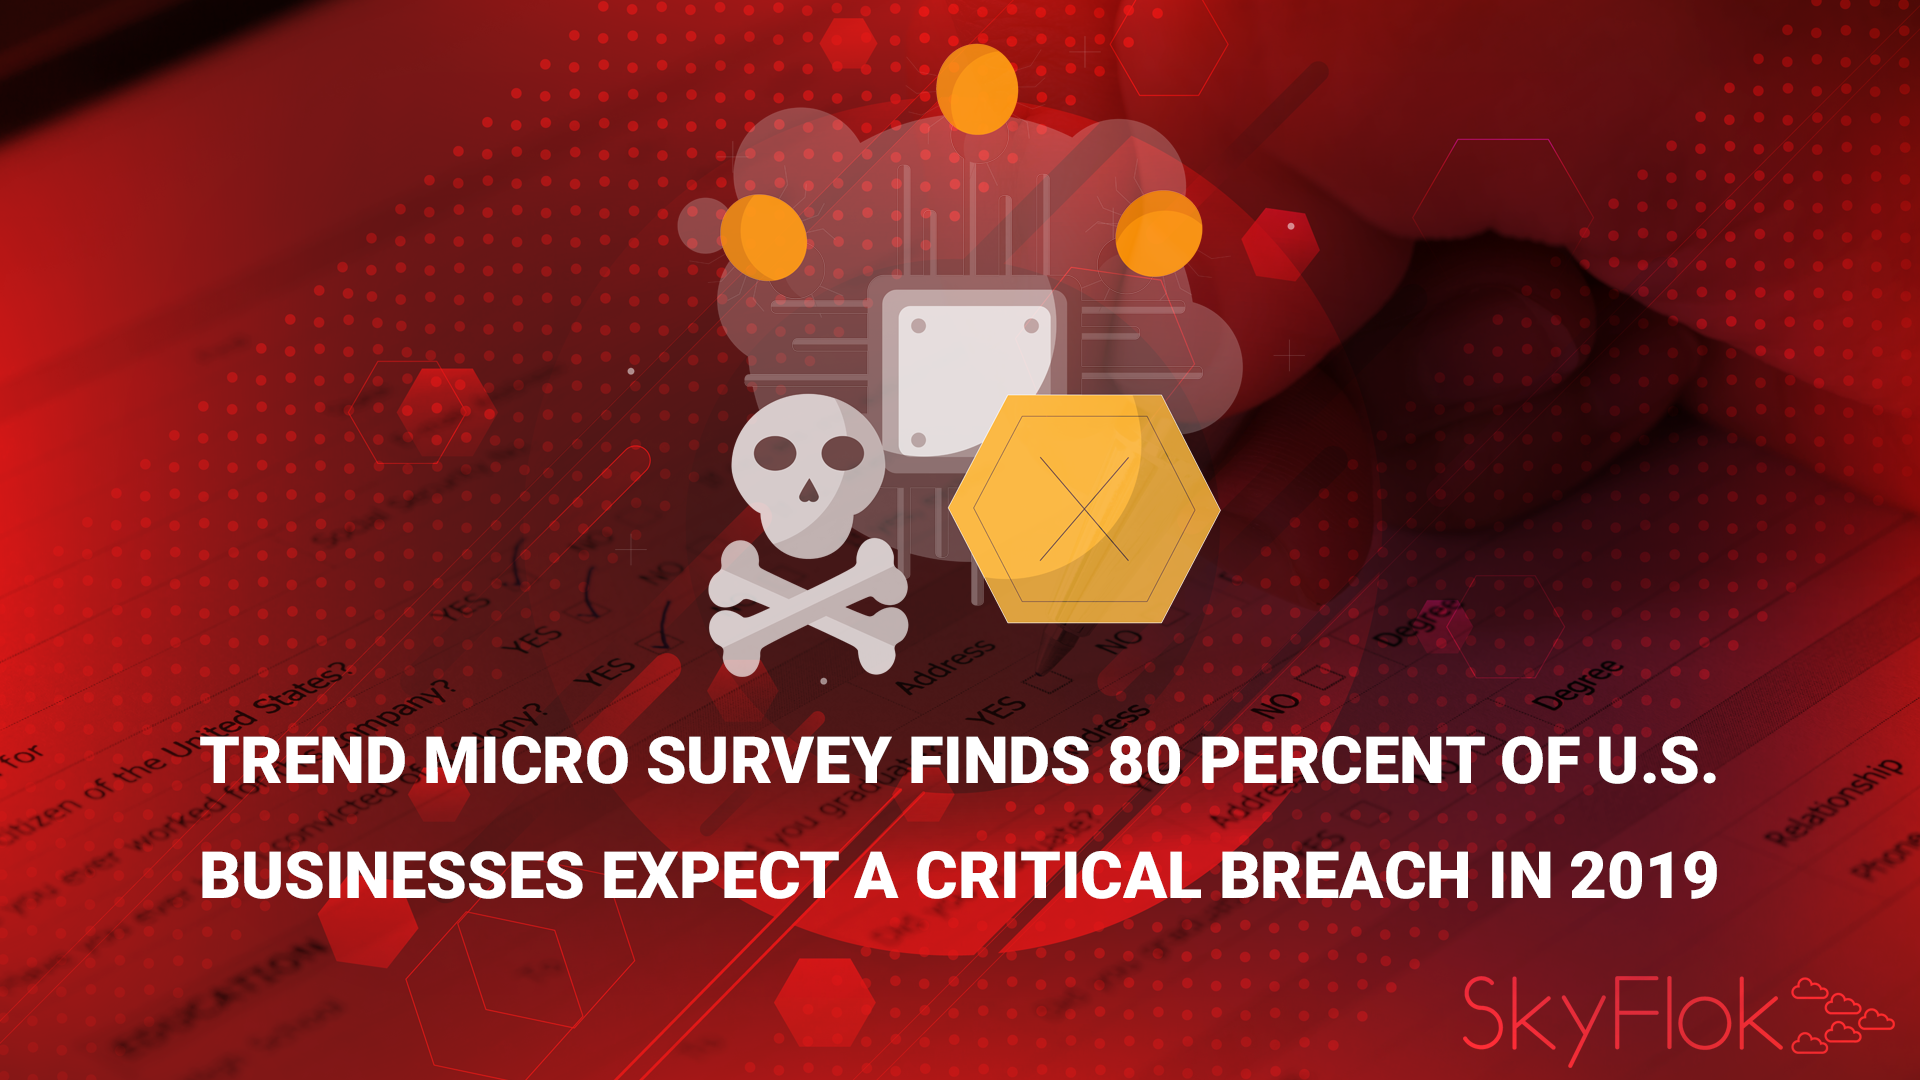 Trend Micro Survey Finds 80 Percent of U.S. Businesses Expect a Critical Breach in 2019